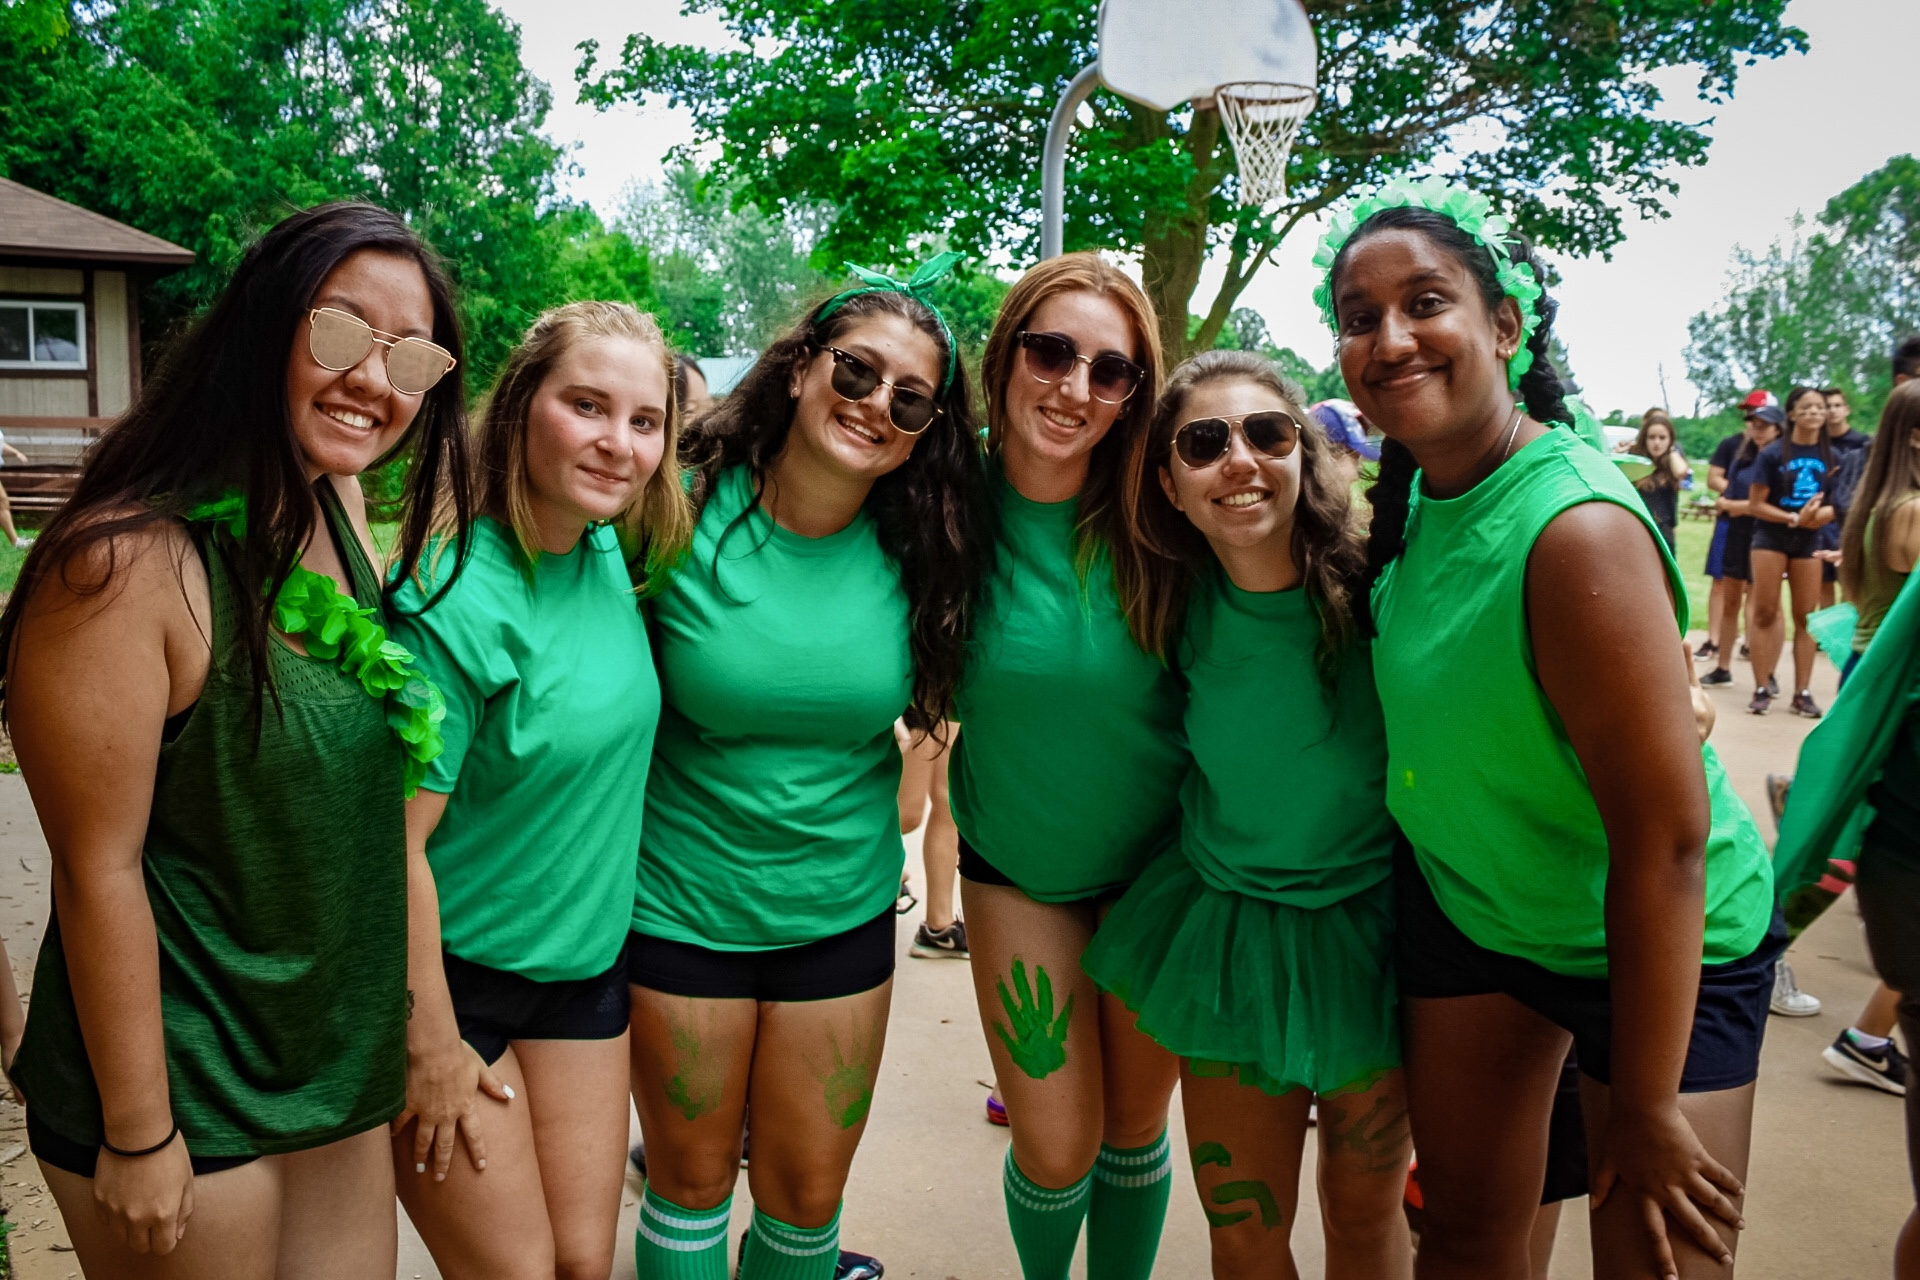 female camp staff all wearing green